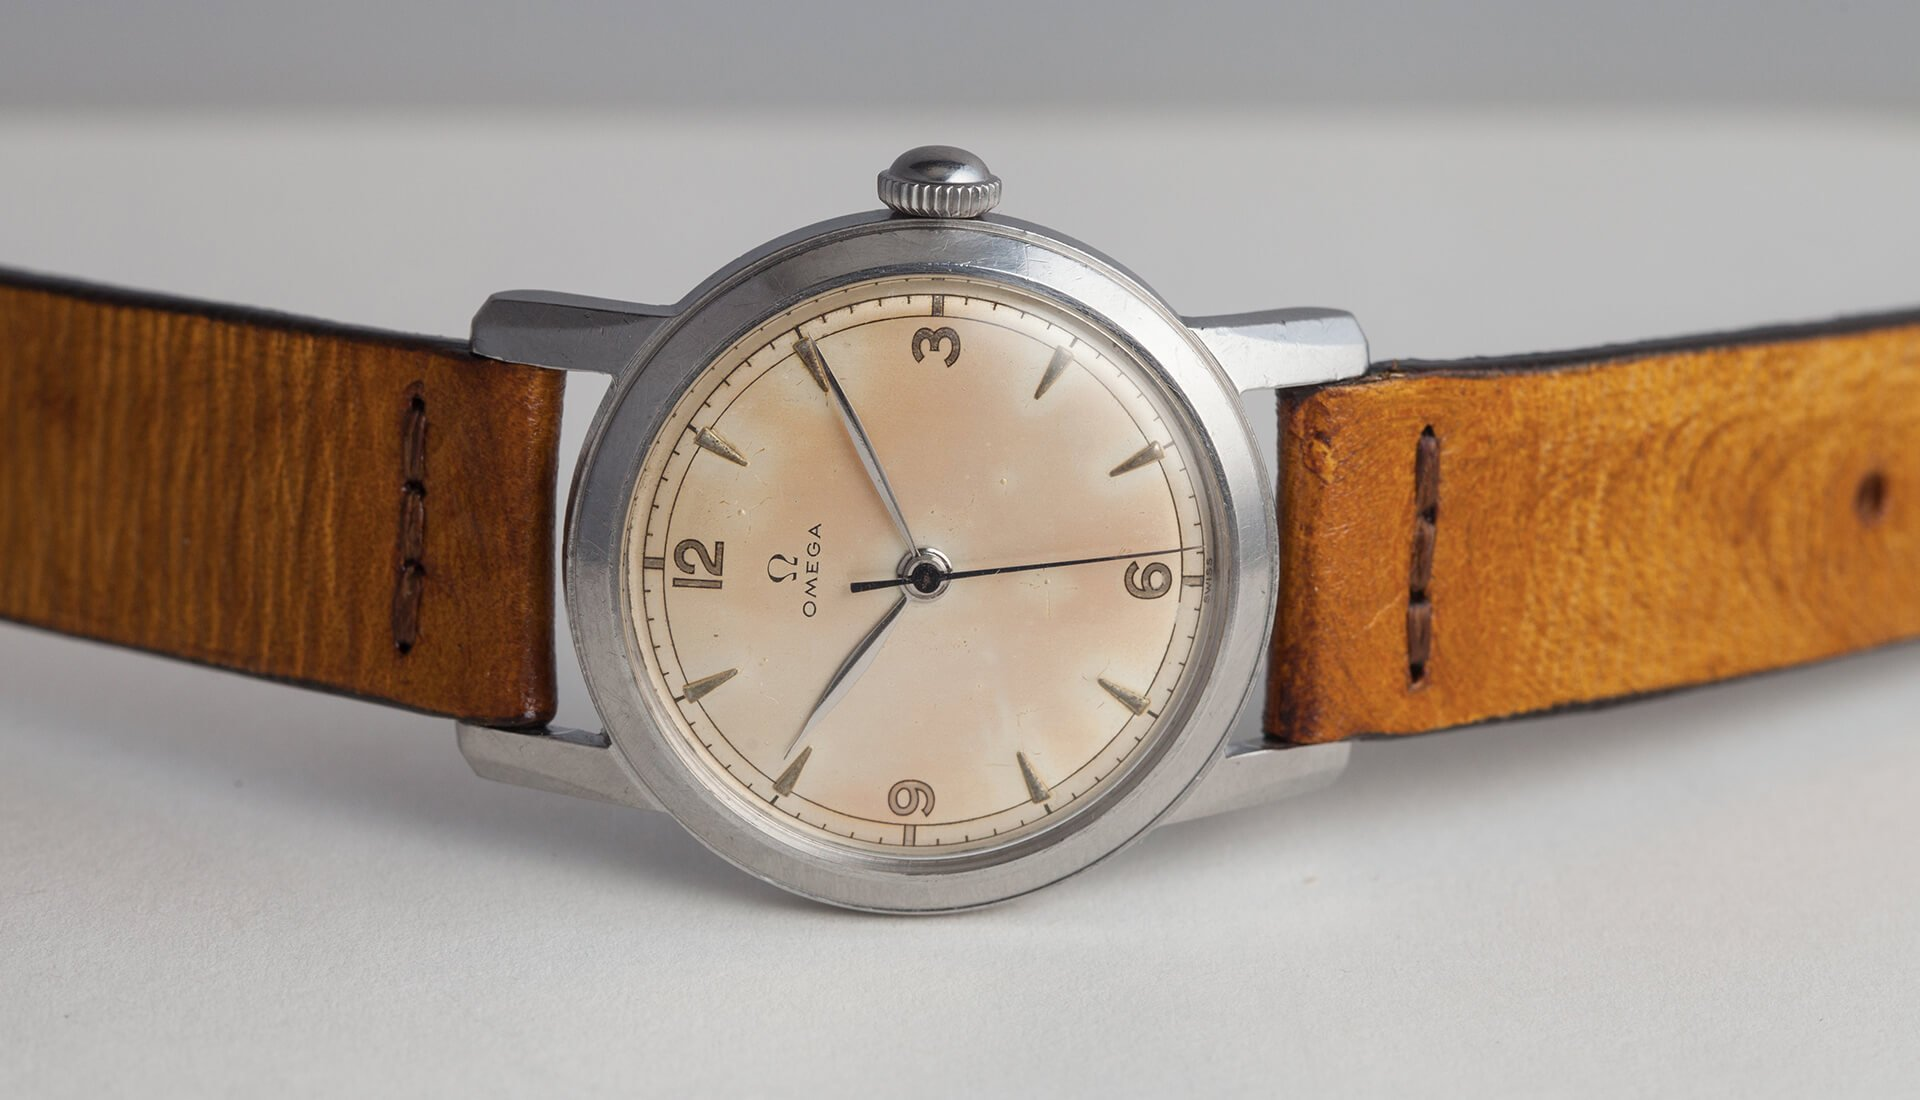 In The Metal: Three Incredible Vintage Watches from Brands You Love